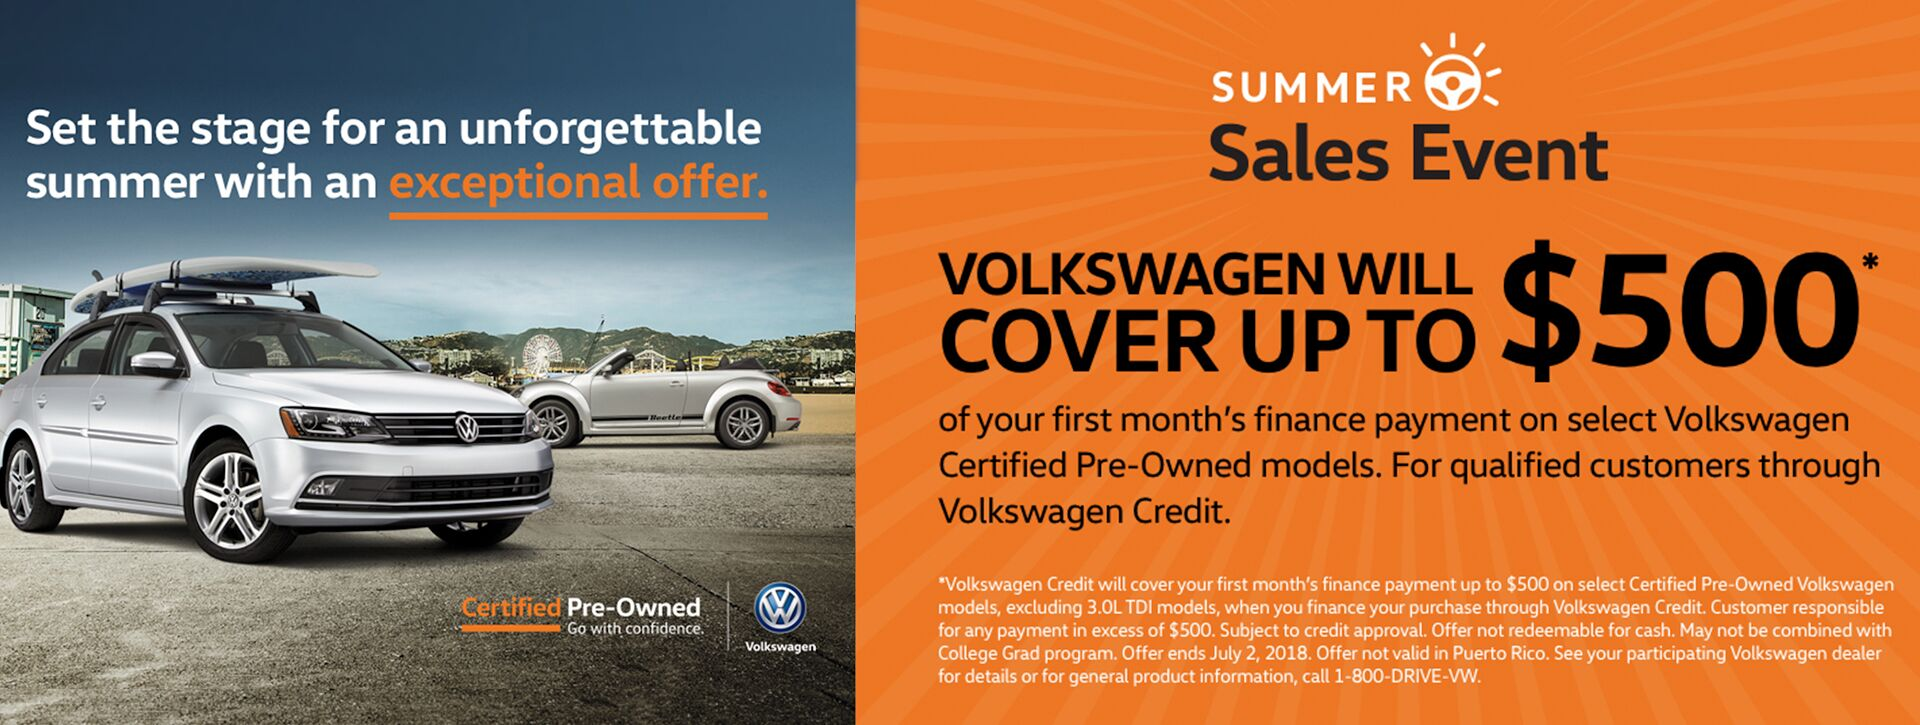 VW CPO Summer Sales Event